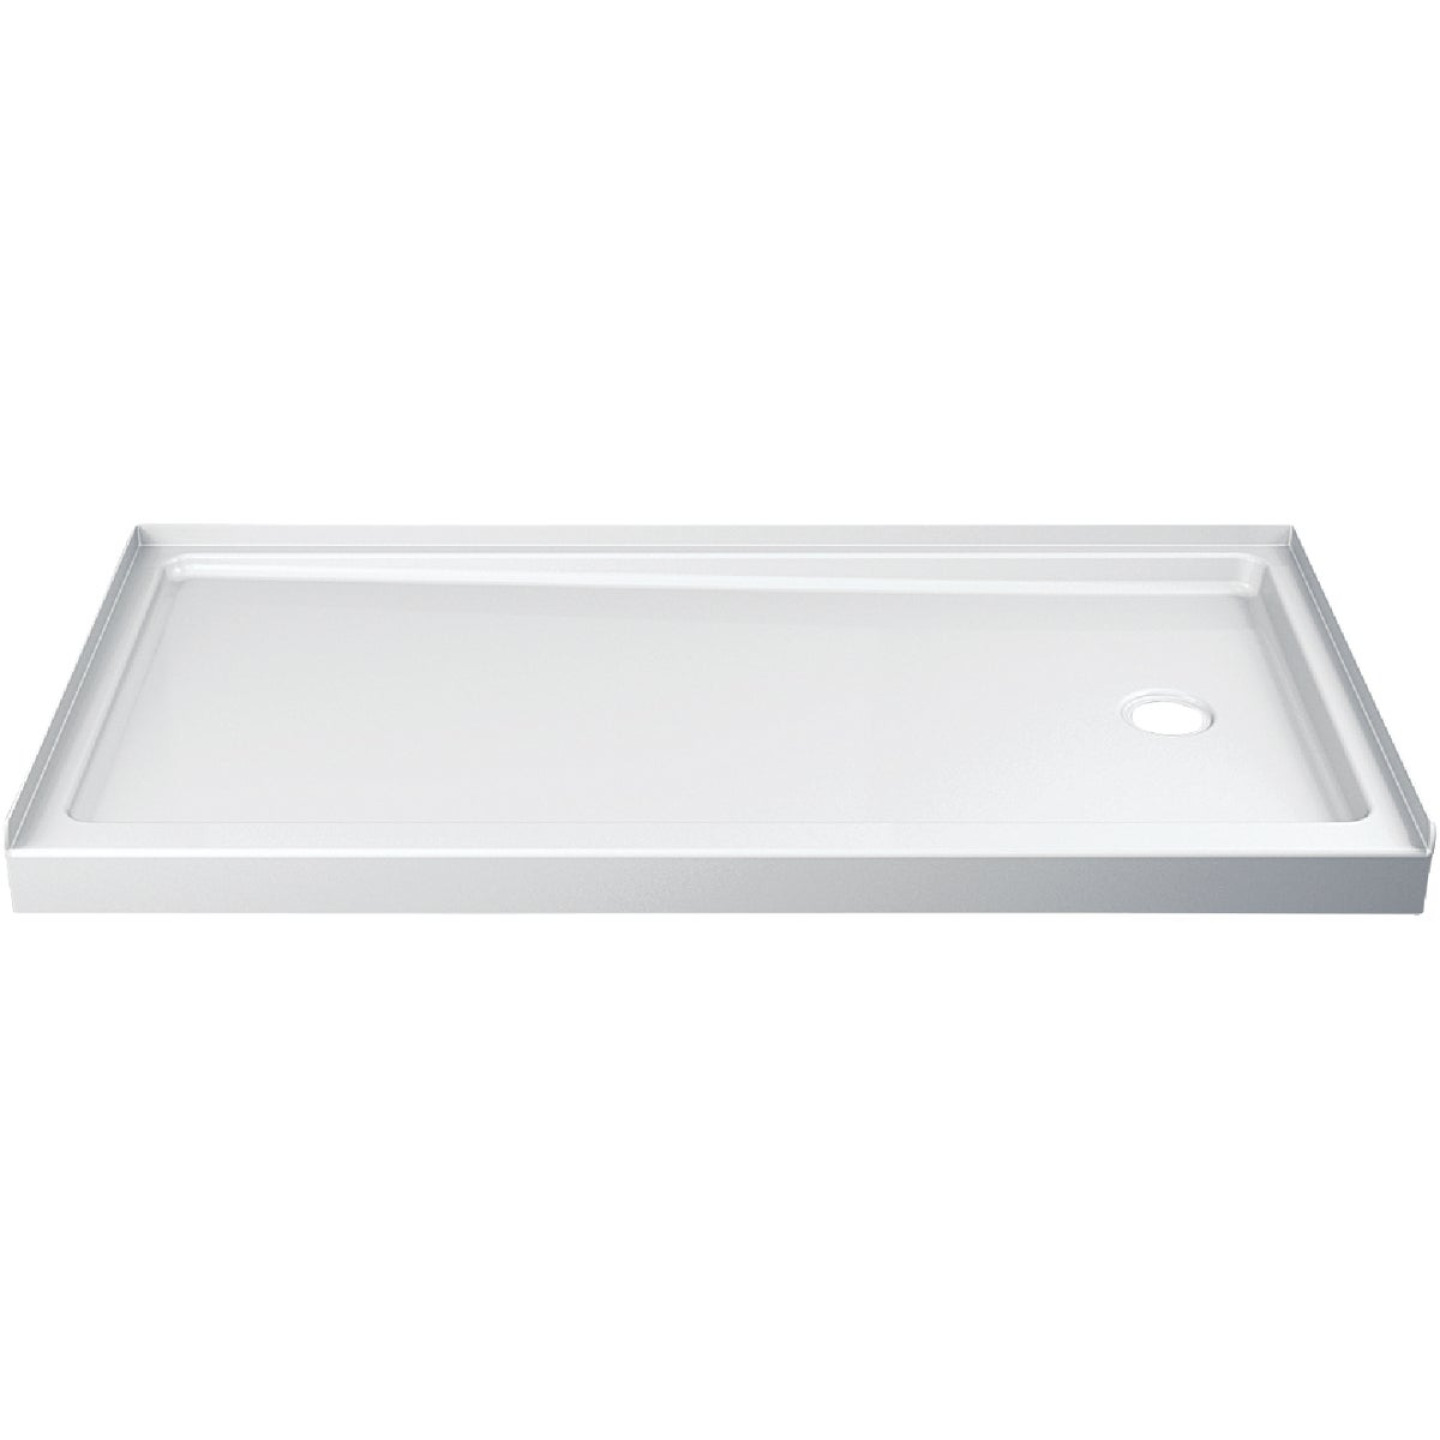 Delta Hycroft 60 In. W x 30 In. D Right Drain Shower Floor & Base in White Image 1